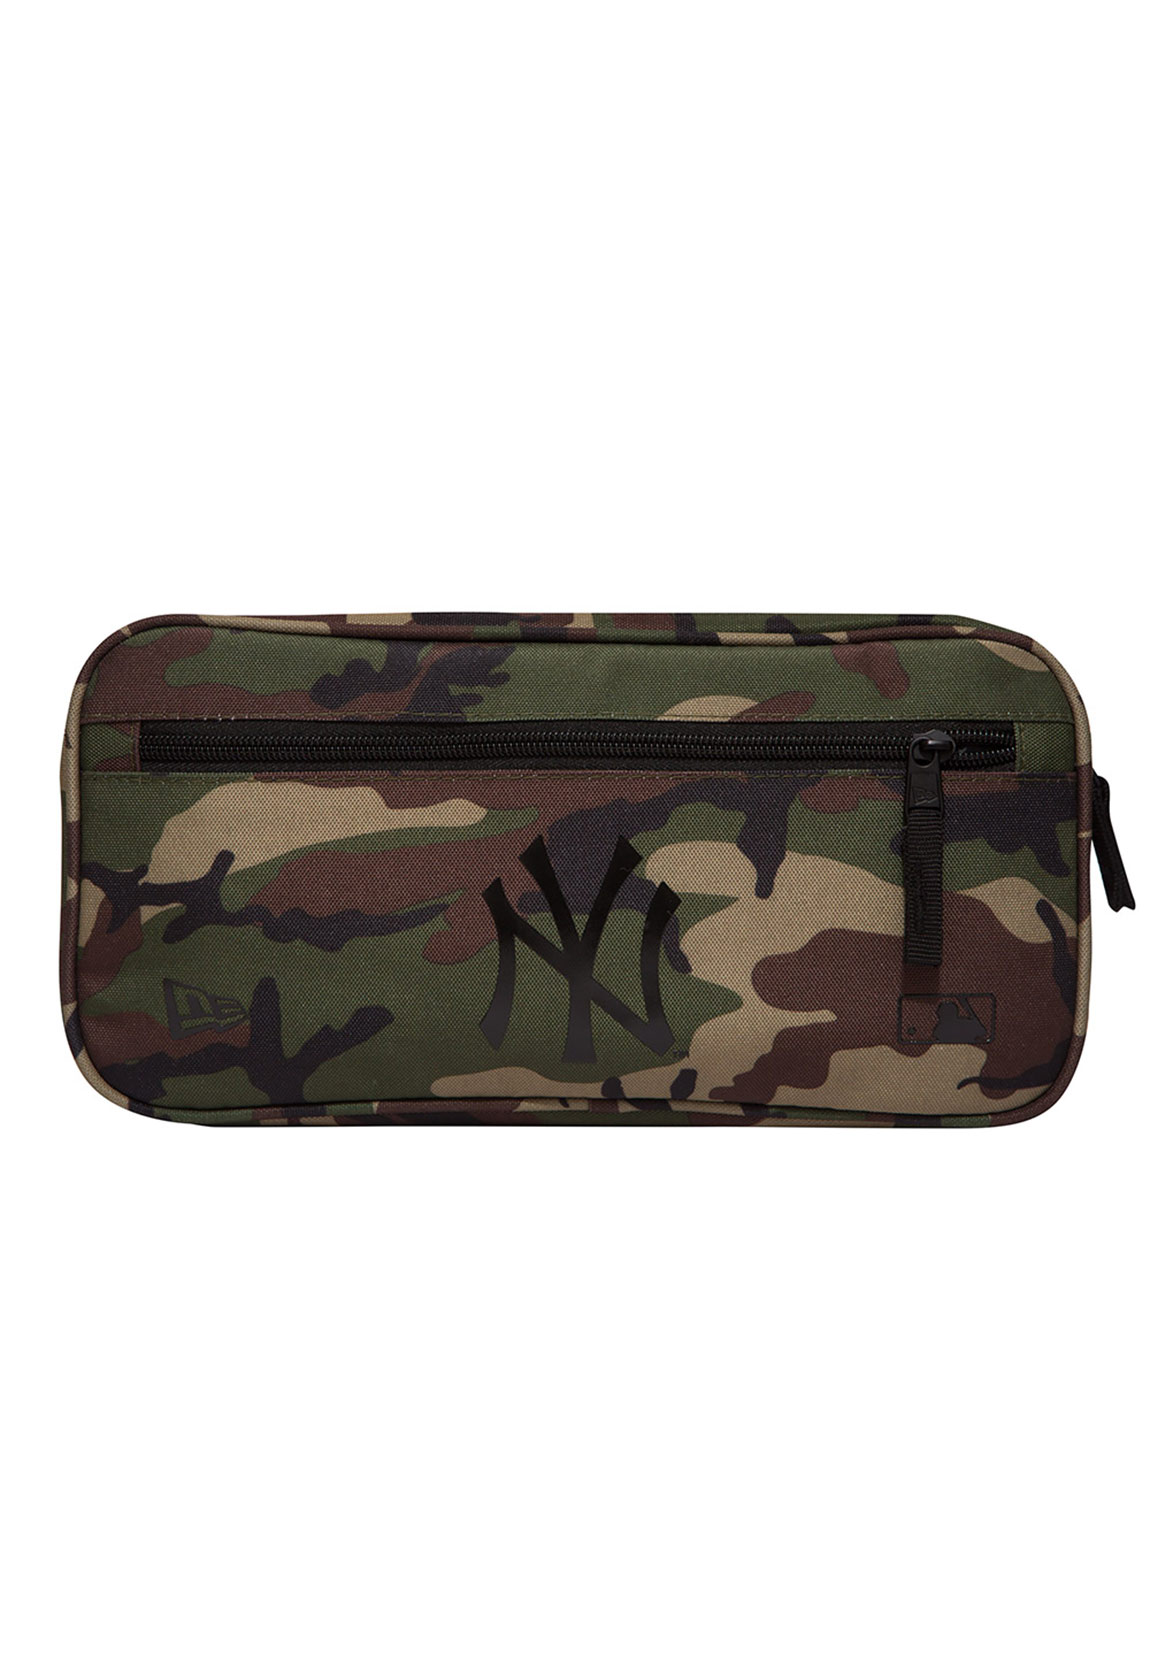 New Era Gürteltasche WAIST BAG NEW YORK YANKEES Camouflage Wdcblk